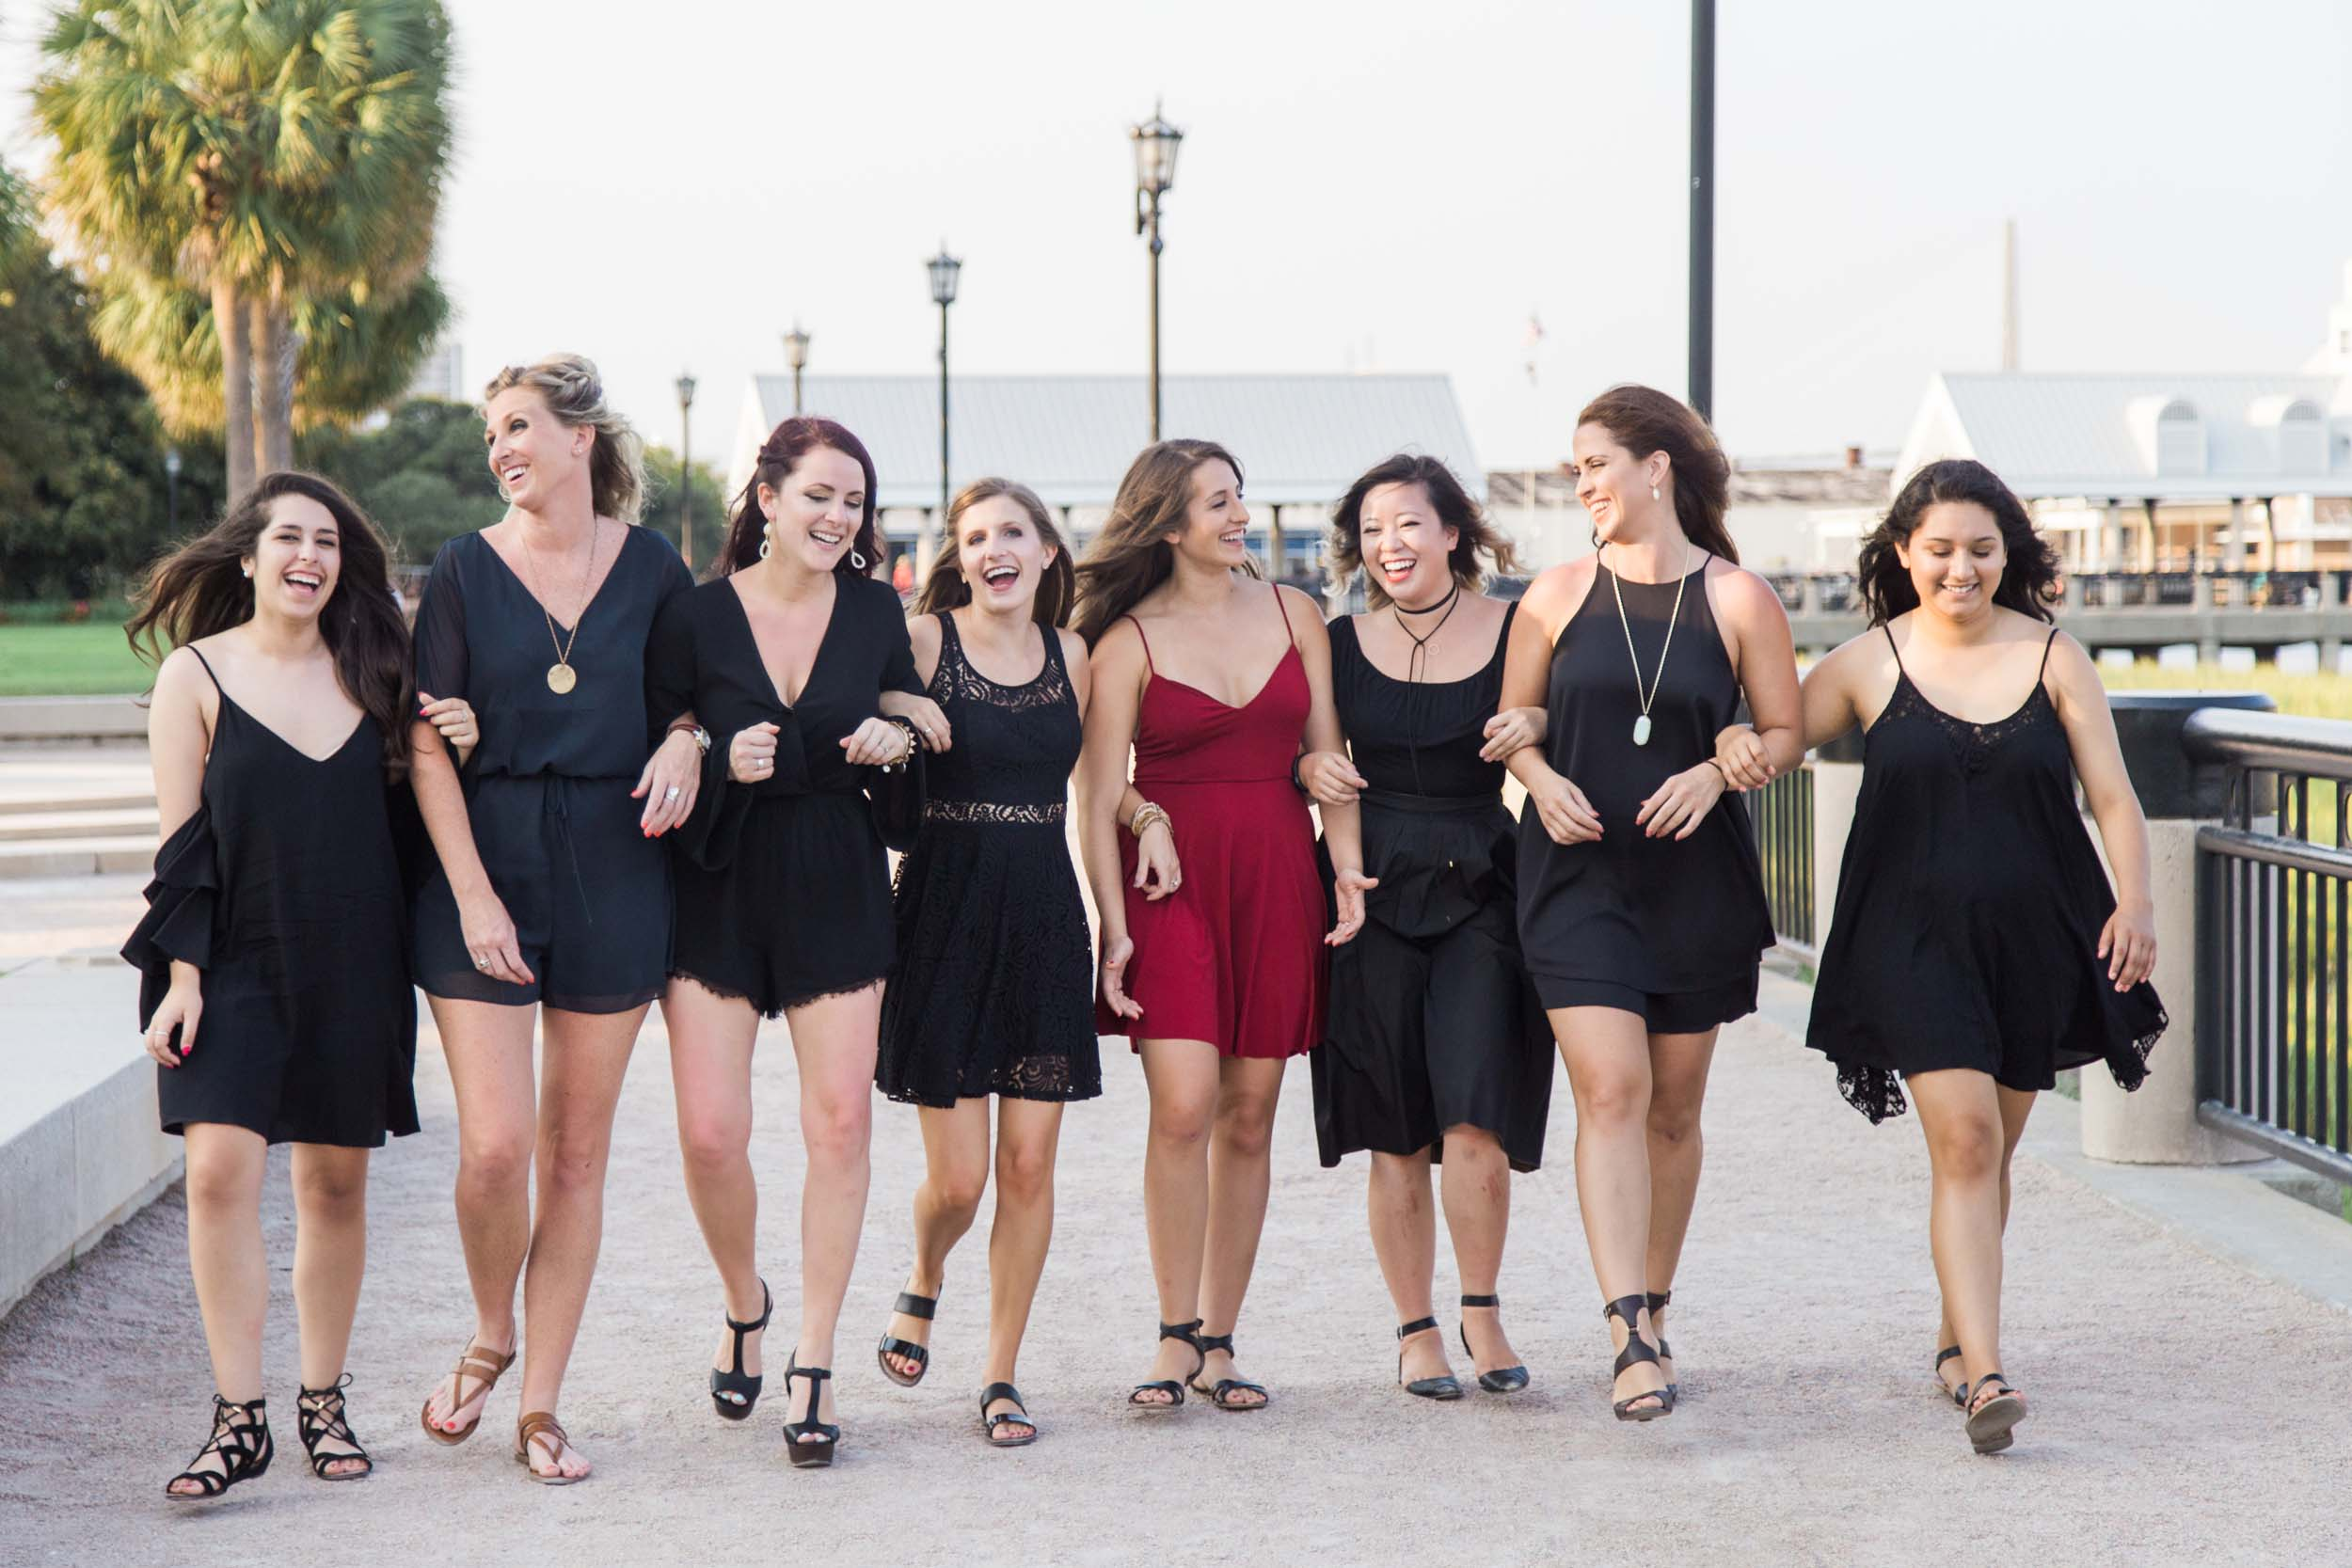 """429f2520642 """"We planned a SURPRISE bachelorette party for Sofia to celebrate the last  month before her upcoming wedding. She had no idea where we were going  until a few ..."""